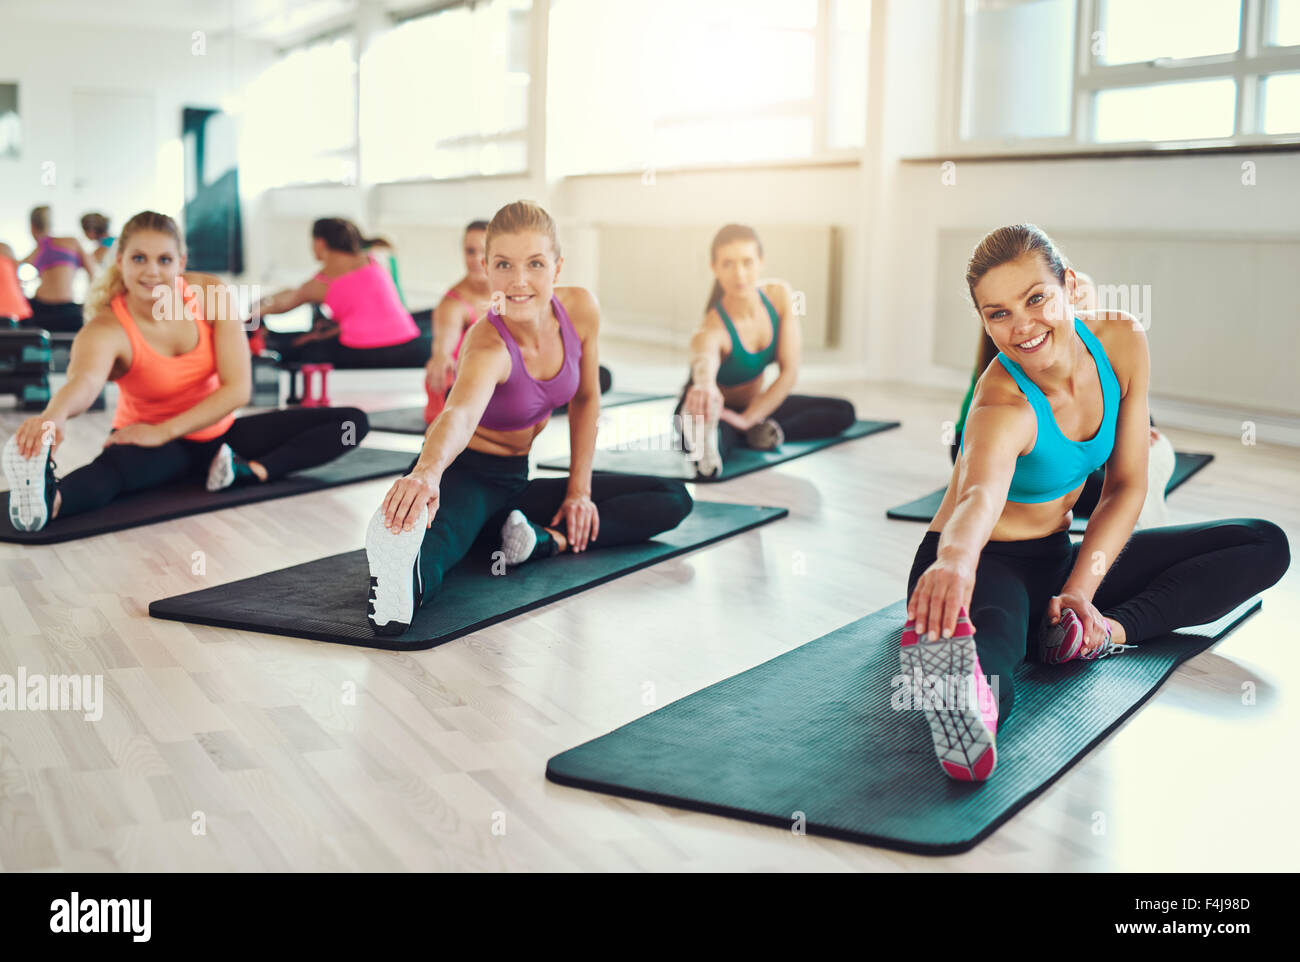 fitness muscles photos fitness muscles images alamy. Black Bedroom Furniture Sets. Home Design Ideas